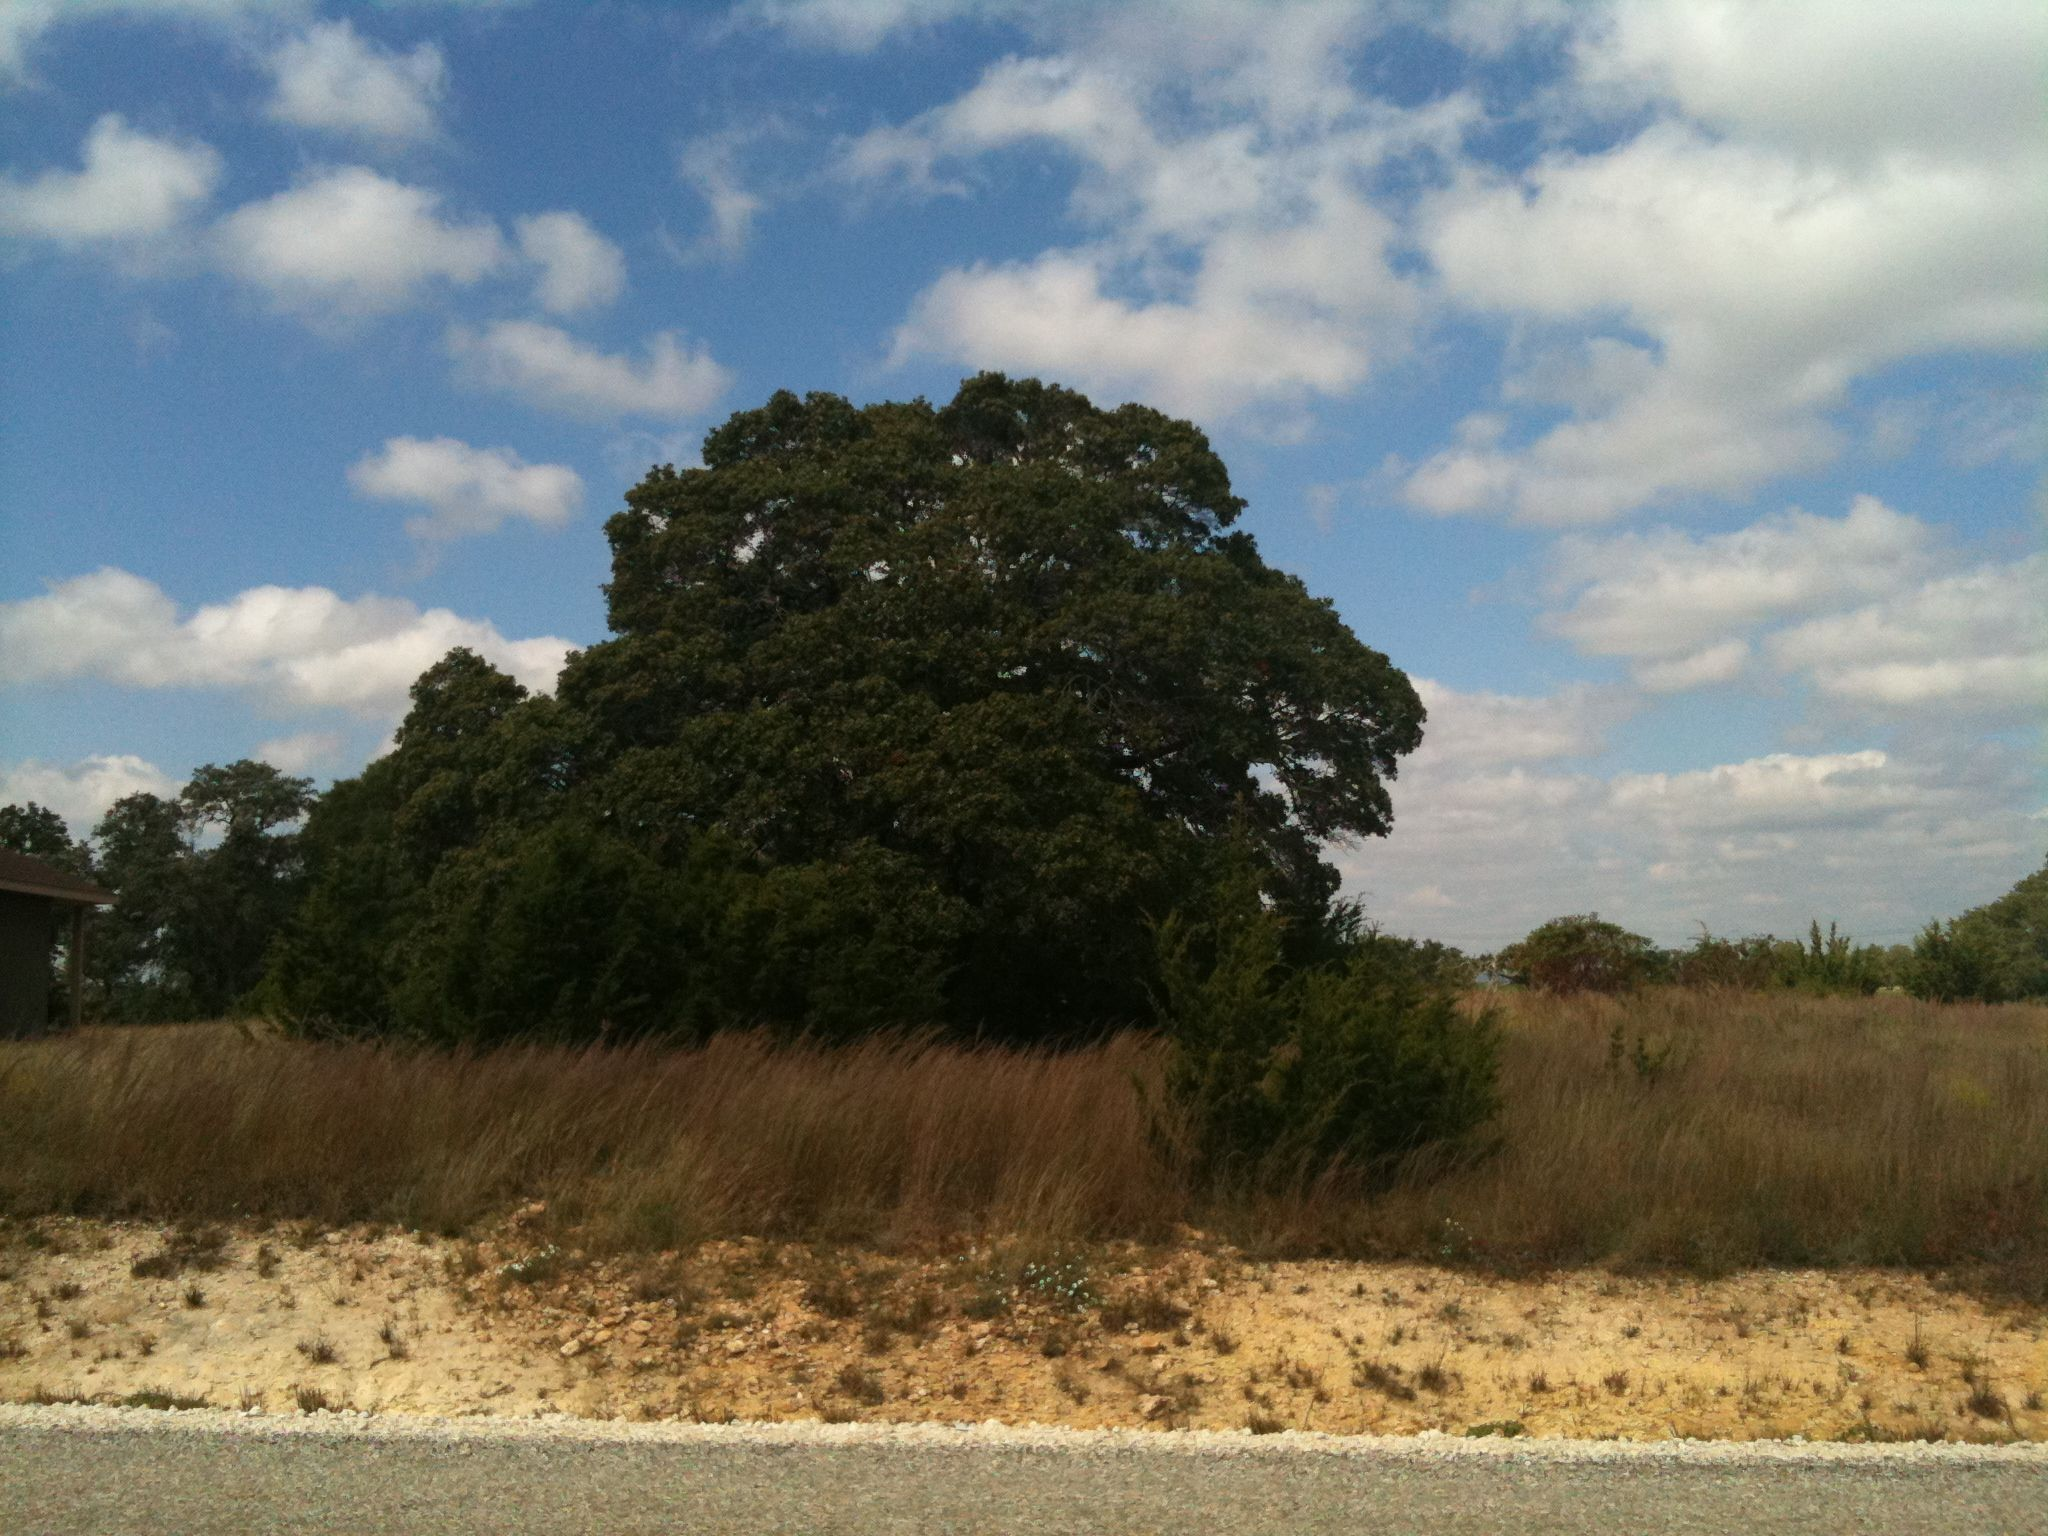 Lot for sale in Rockin J Ranch Texas hill country, Lots